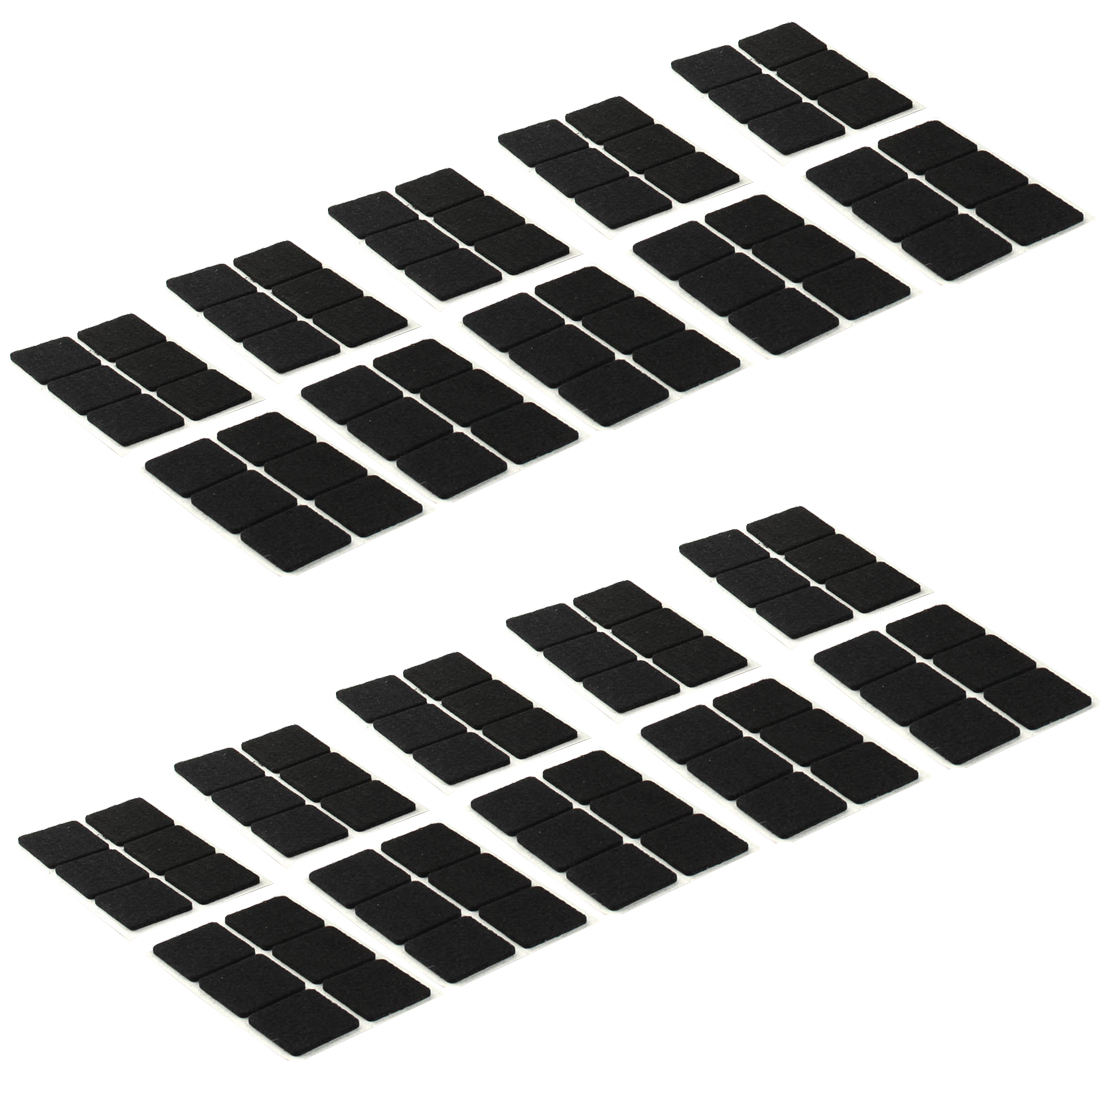 Table Chair Square Anti Slip Self Adhesive Furniture Felt Pads Cover Black 30 x 30mm 120pcs